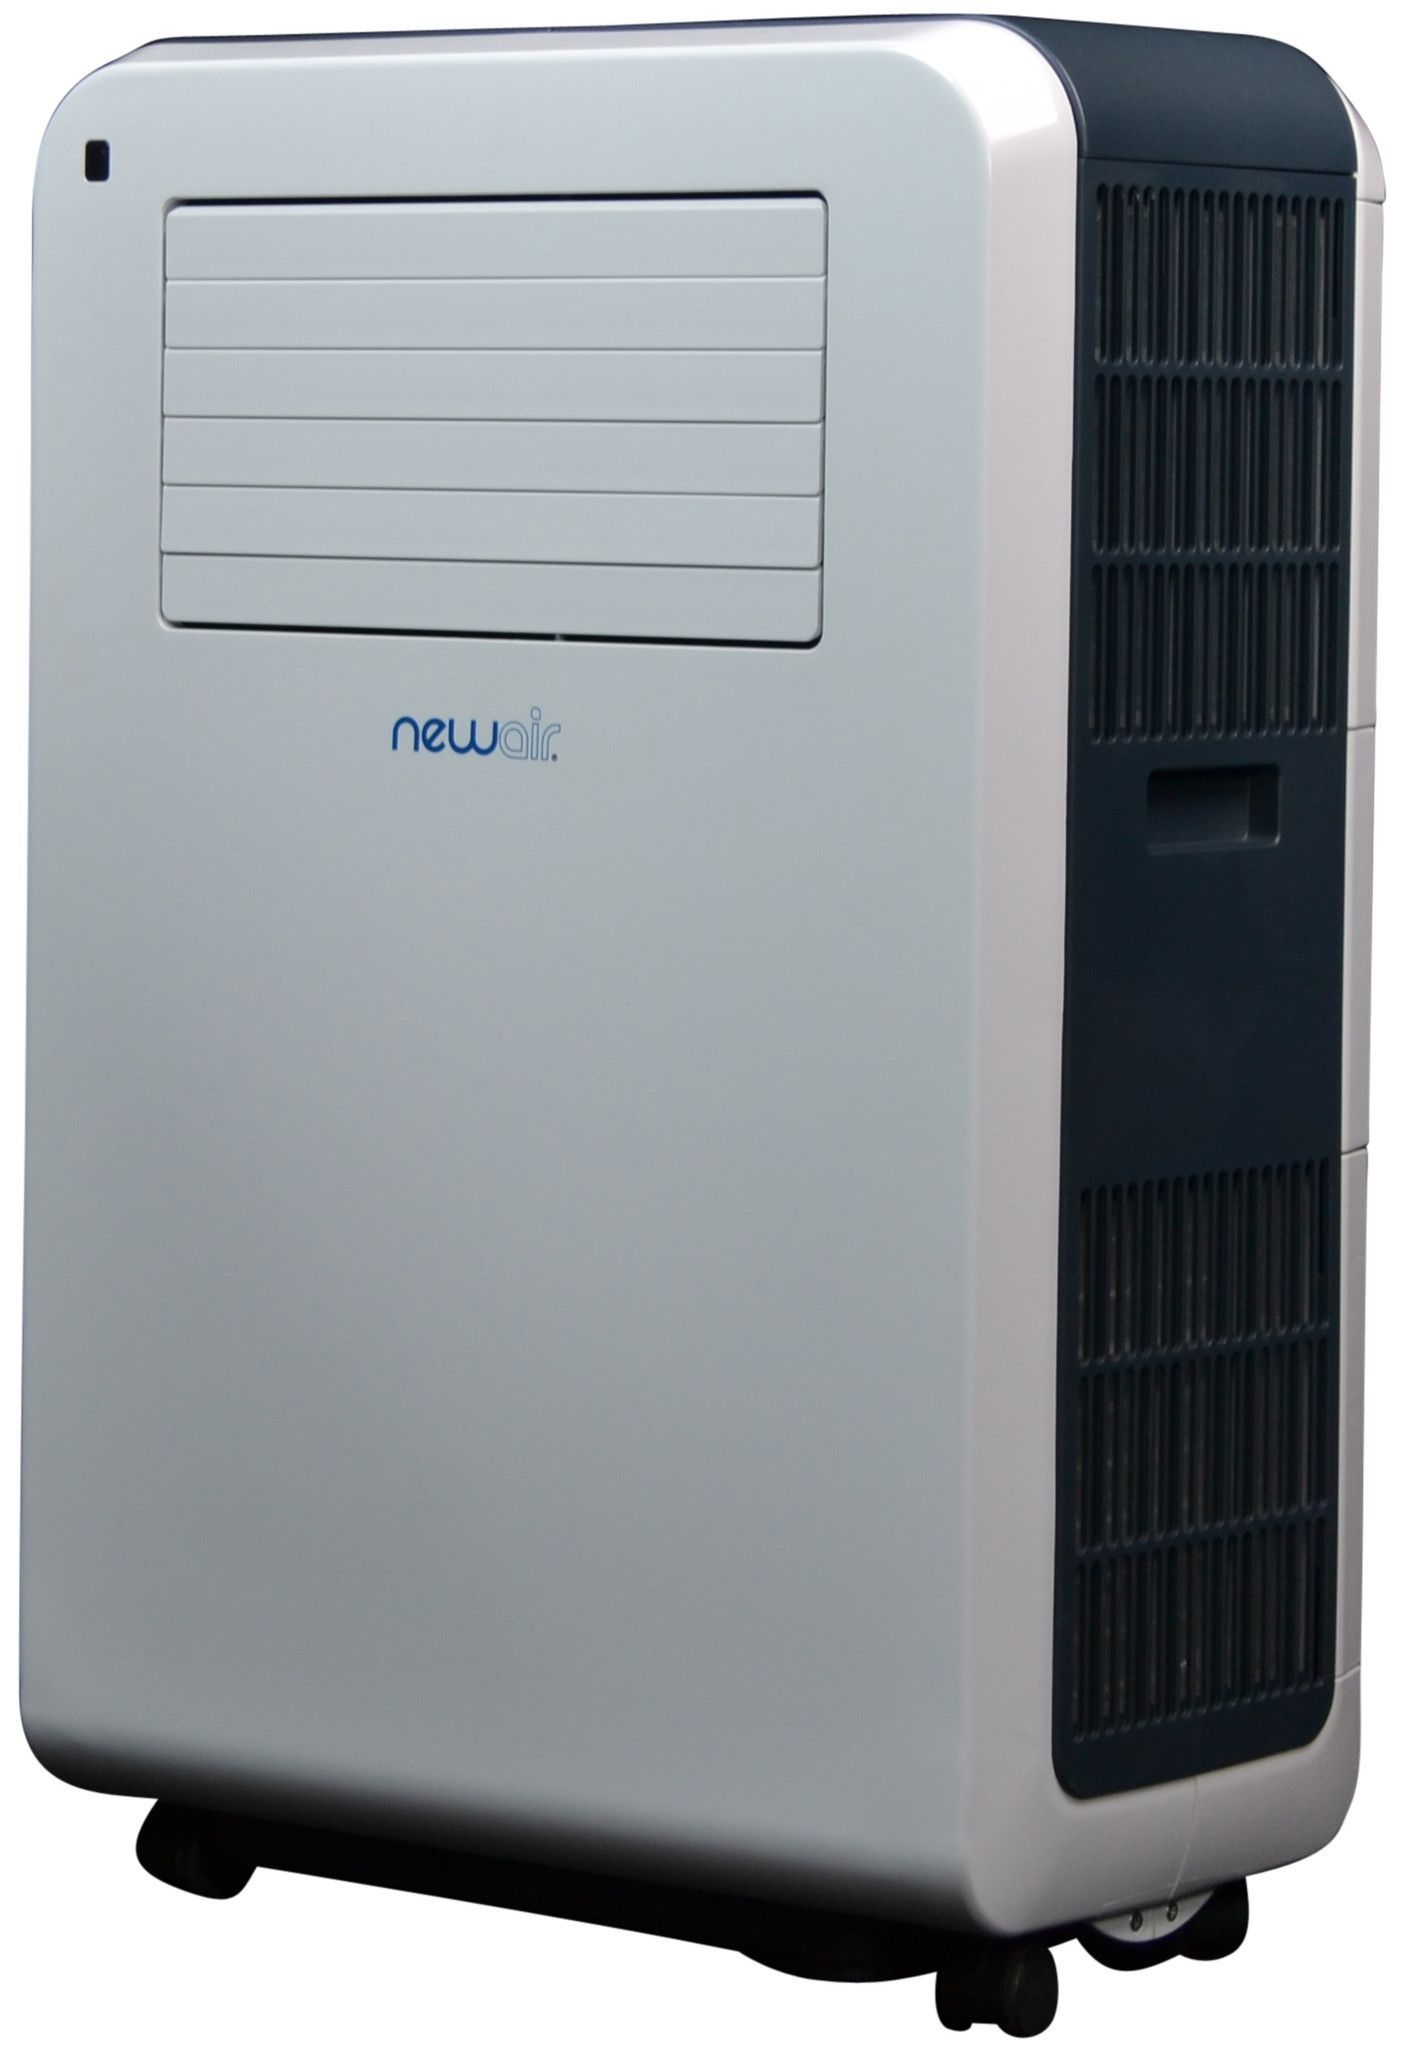 Newair Ac 12200e 12 000 Btu Portable Air Conditioner Portable Air Conditioner Heating And Air Conditioning Air Conditioner